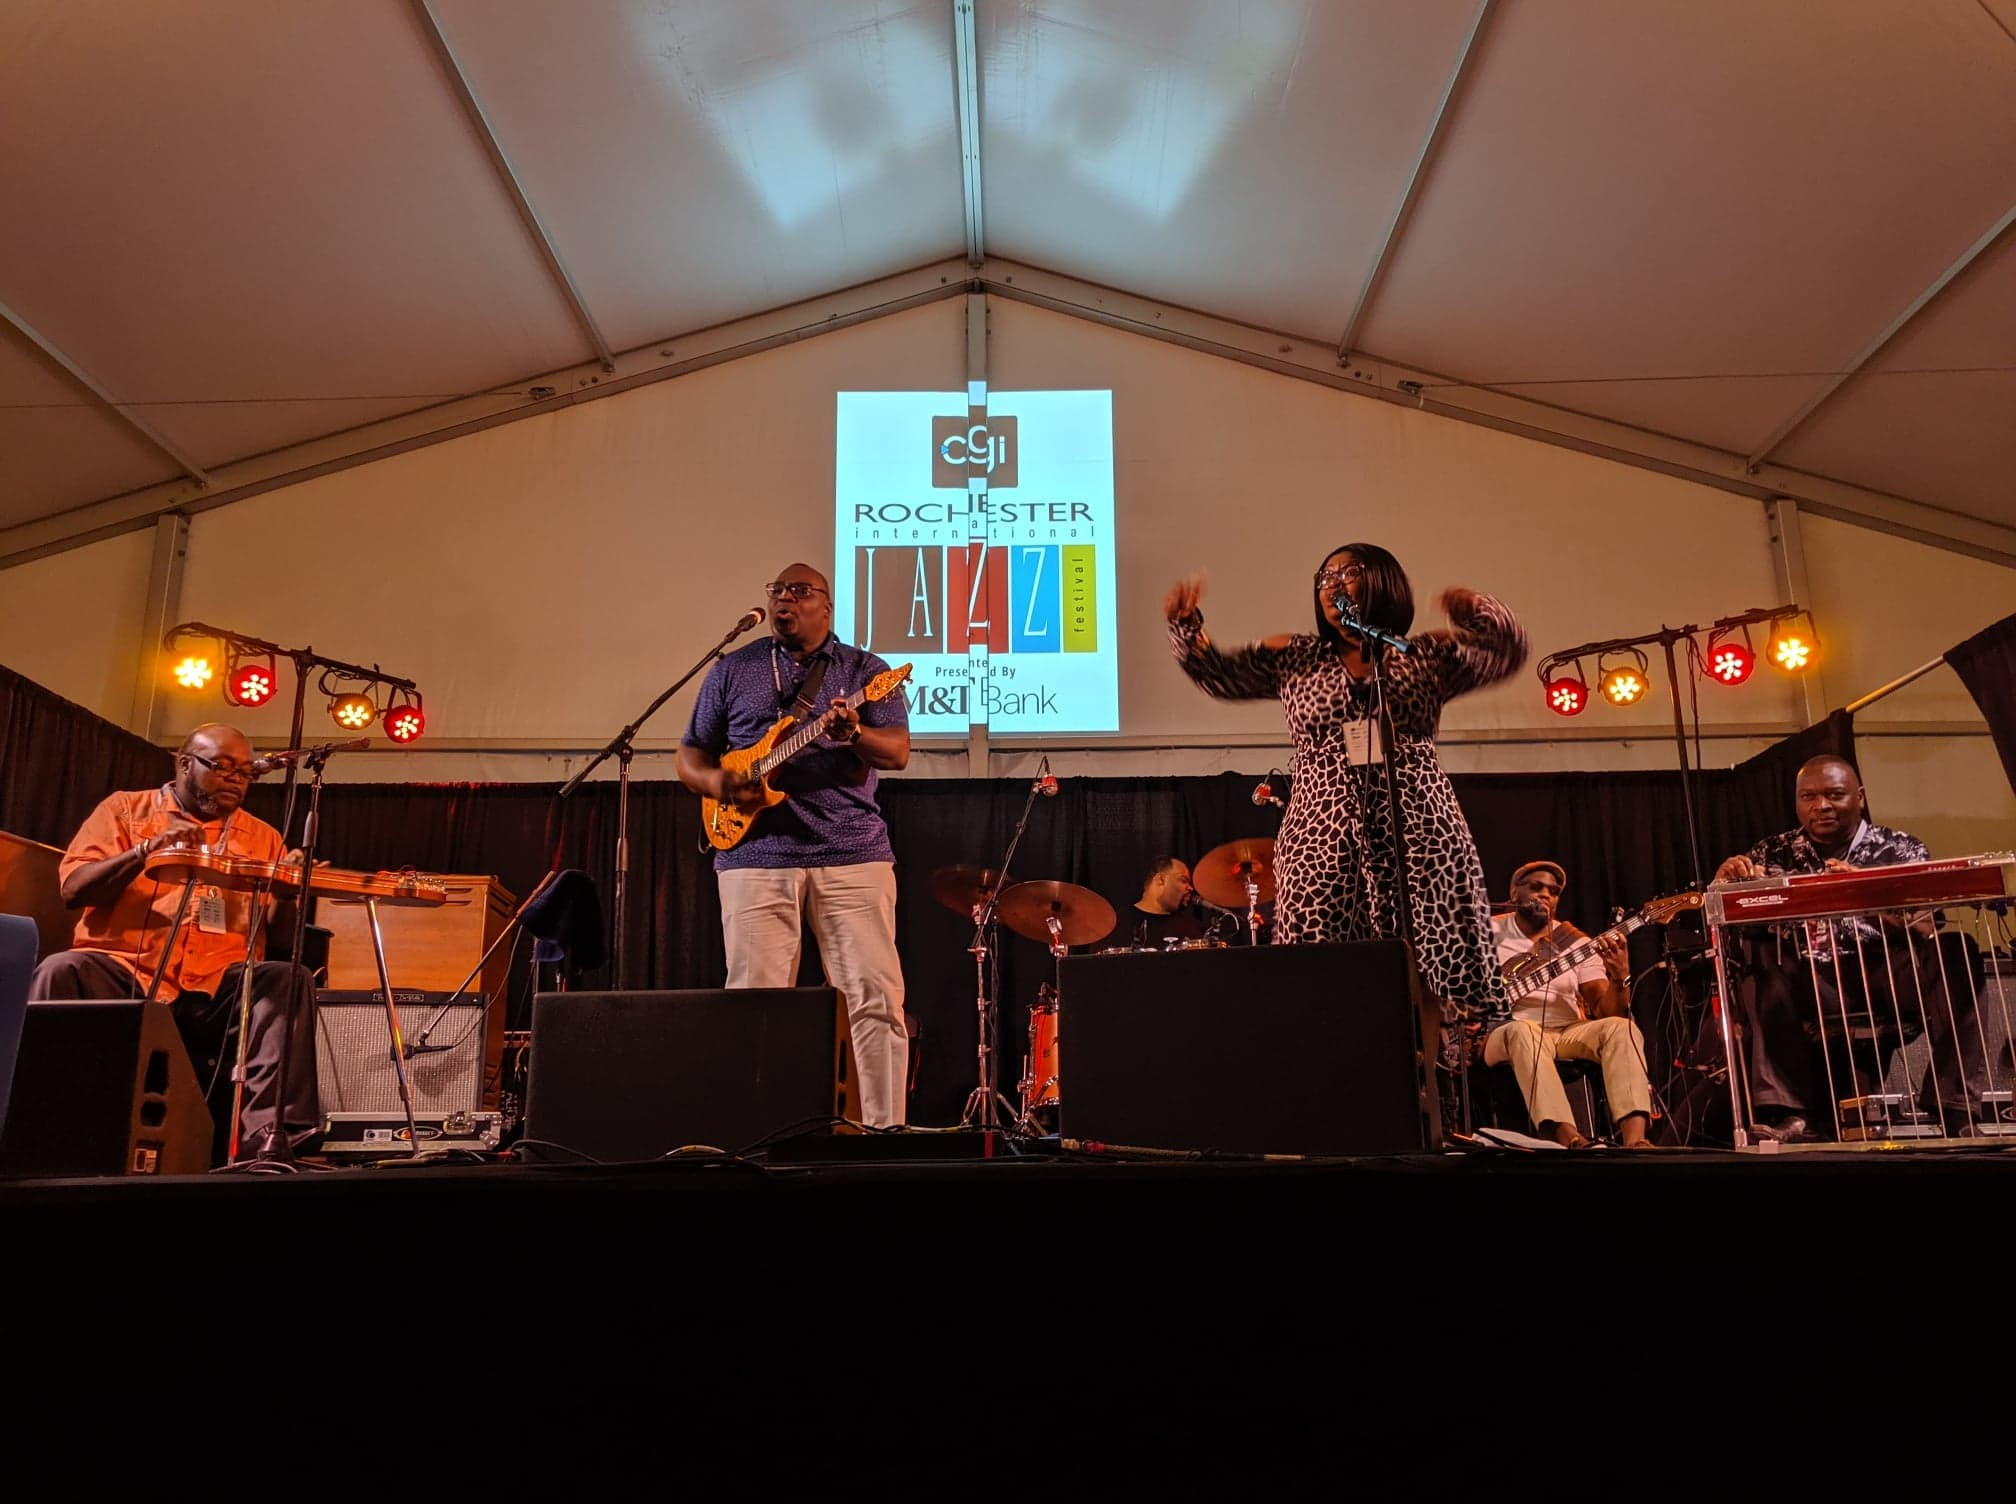 No Jazz Fest >> Jazz Fest 2019 Day 3 Jeff Reviews The Campbell Brothers